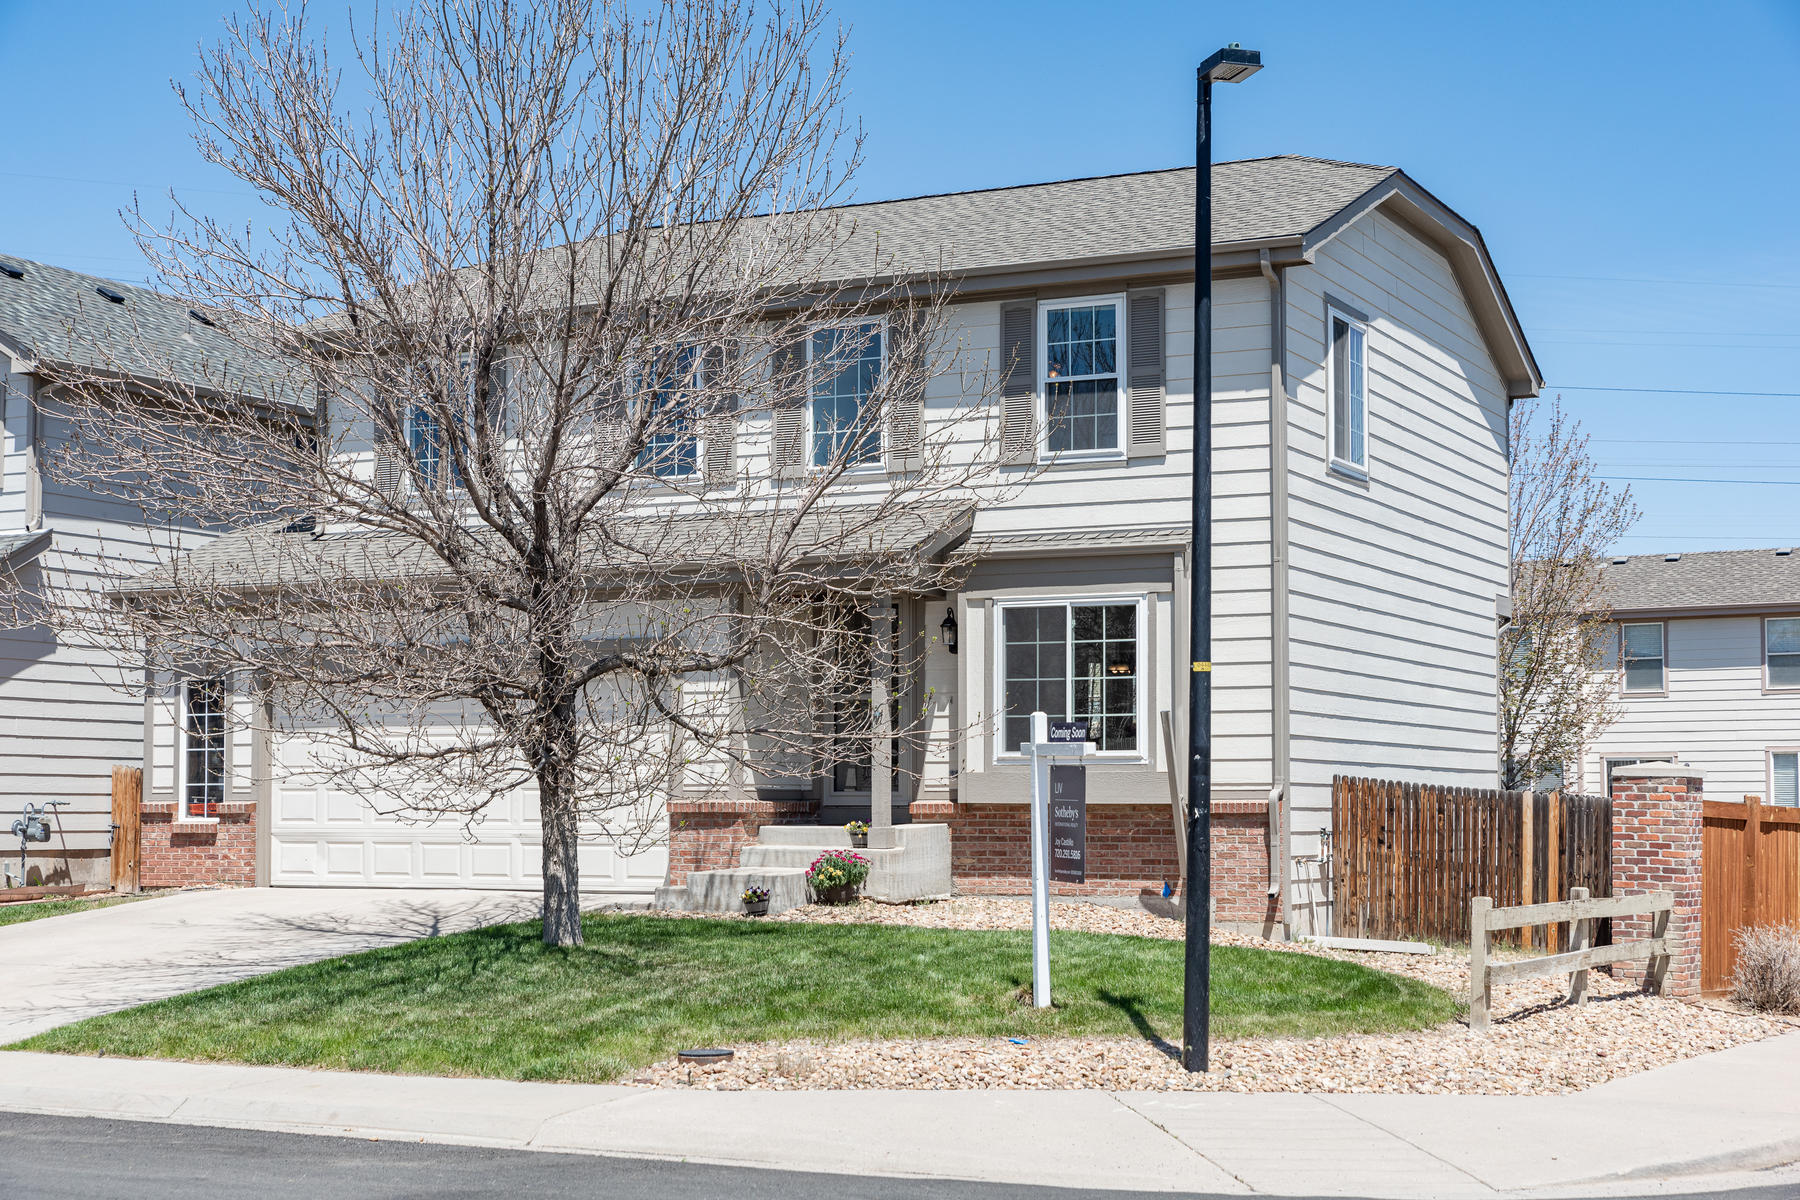 Single Family Homes for Sale at Absolutely Perfect, Well-Maintained Two Story in Willow Trace 20399 E Union Drive, Aurora, Colorado 80015 United States